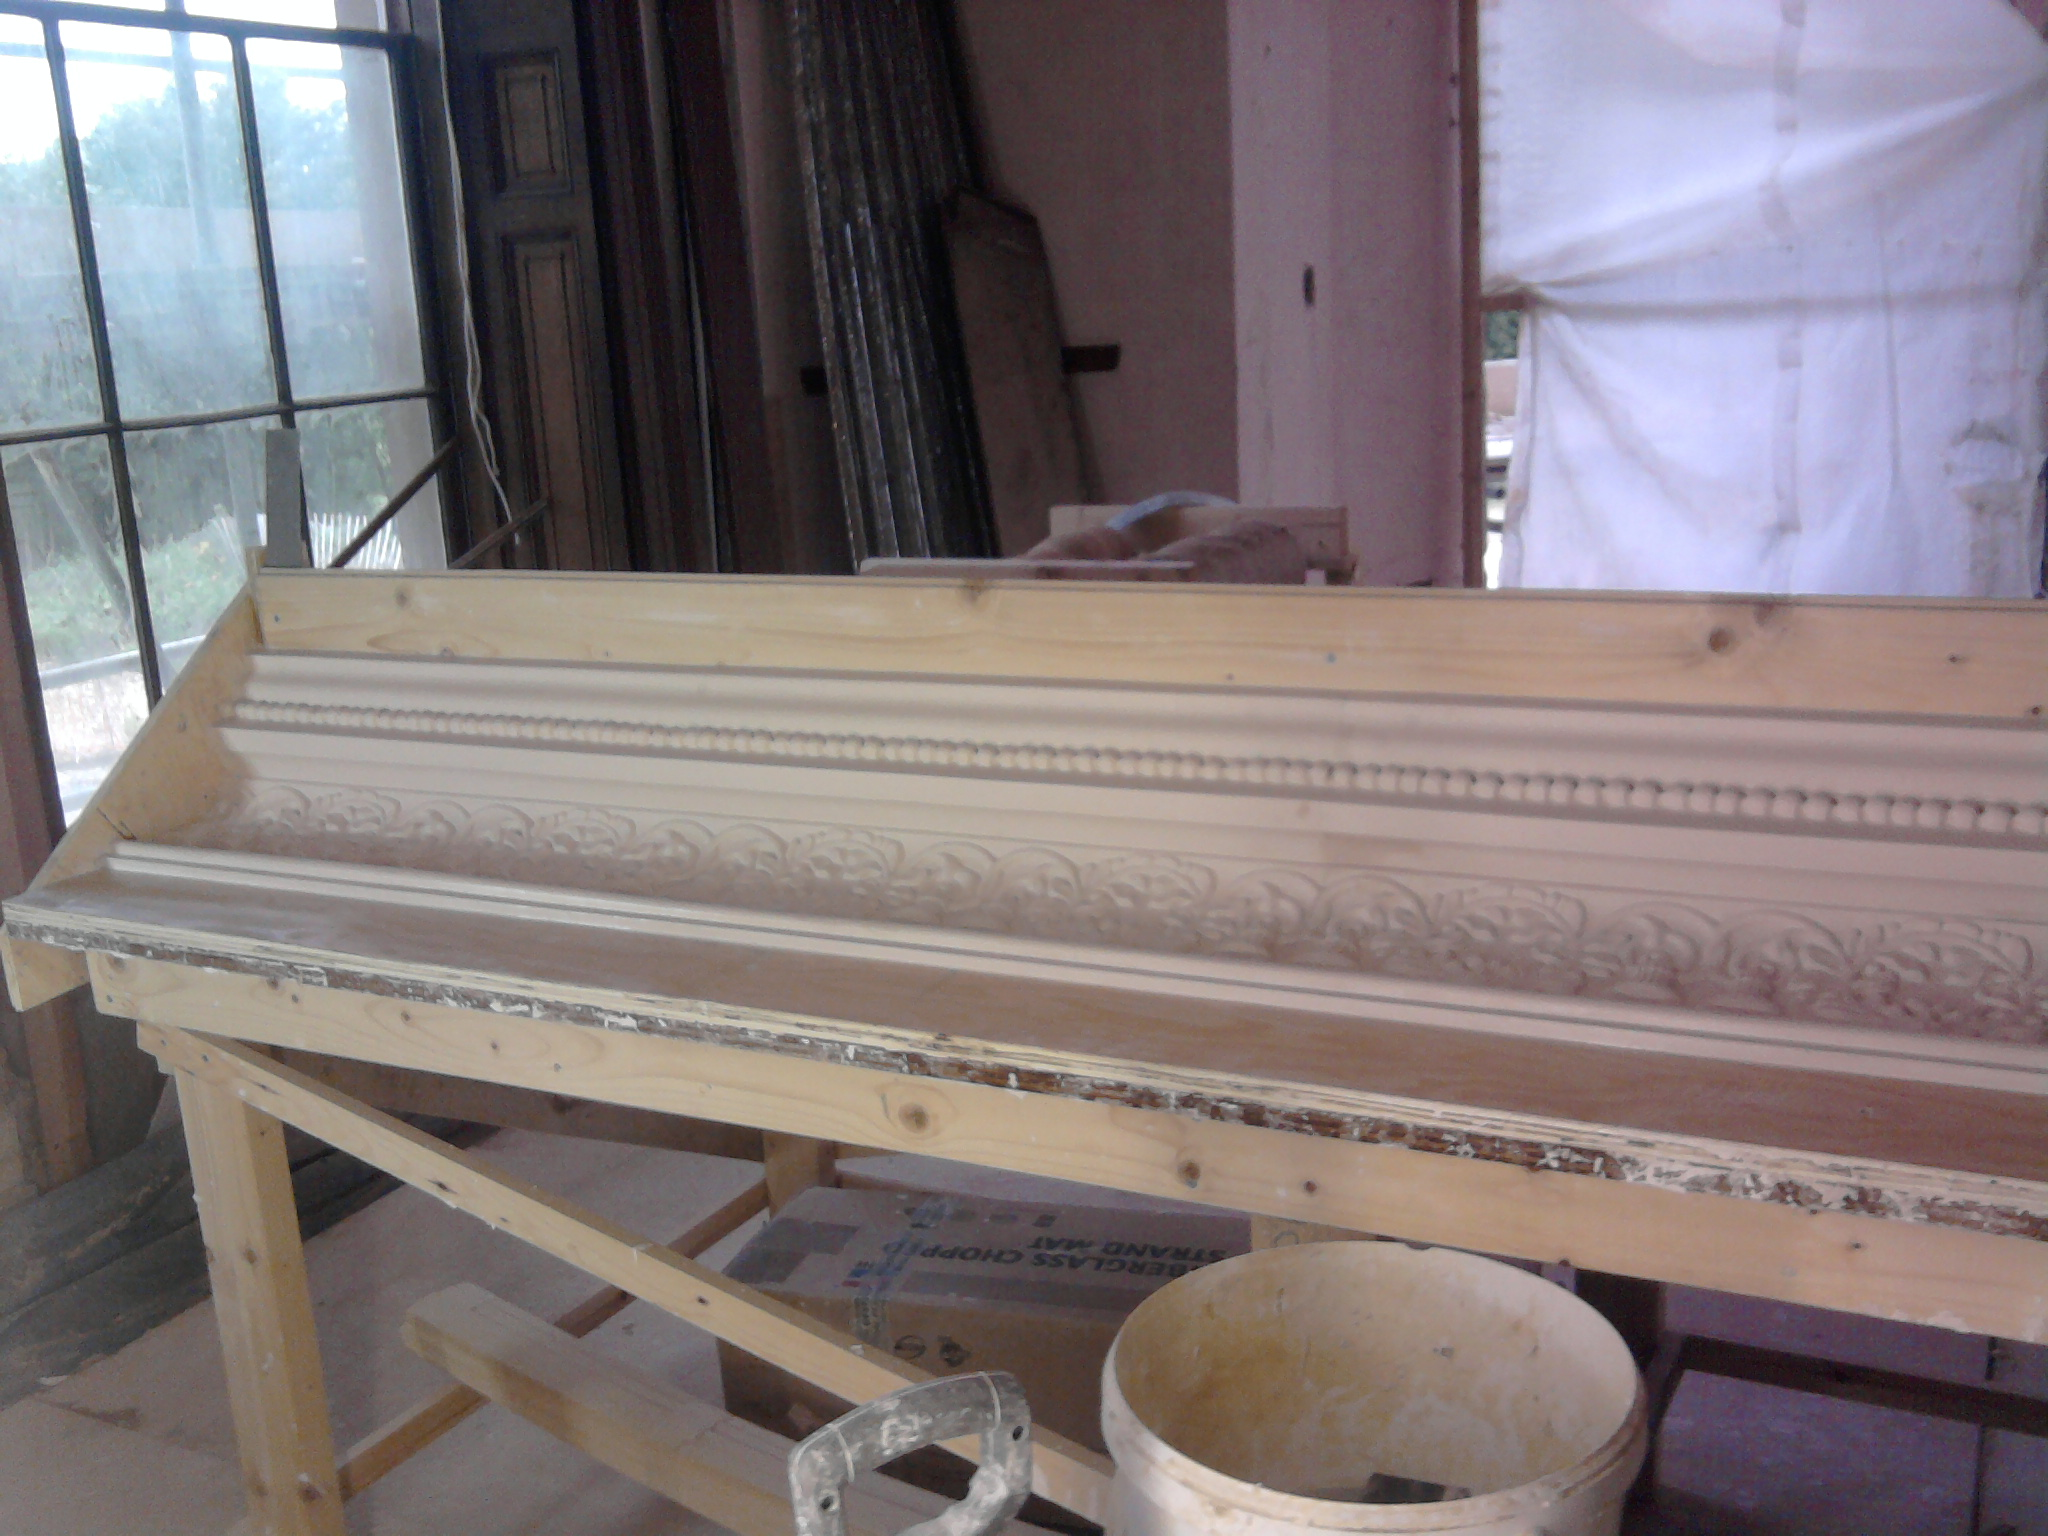 cornice prepared to create a Master Copy